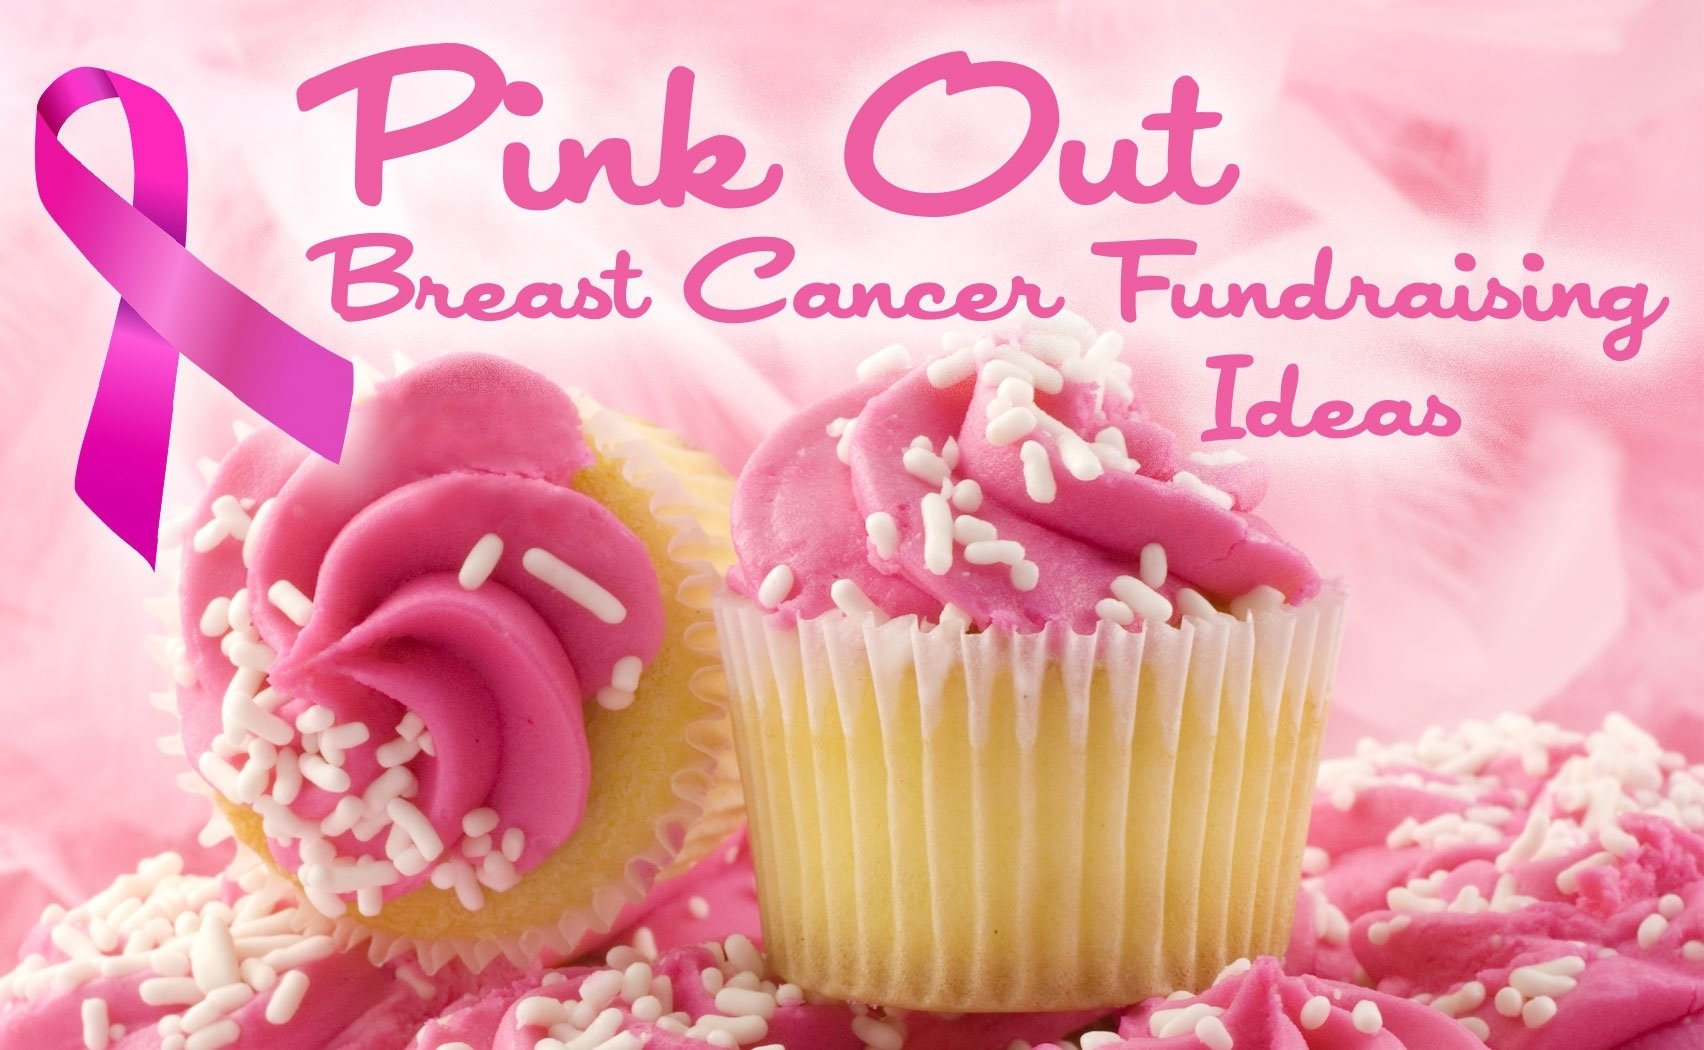 10 Fantastic Fundraising Ideas For Breast Cancer iza design blogpink out breast cancer fundraiser ideas 2020